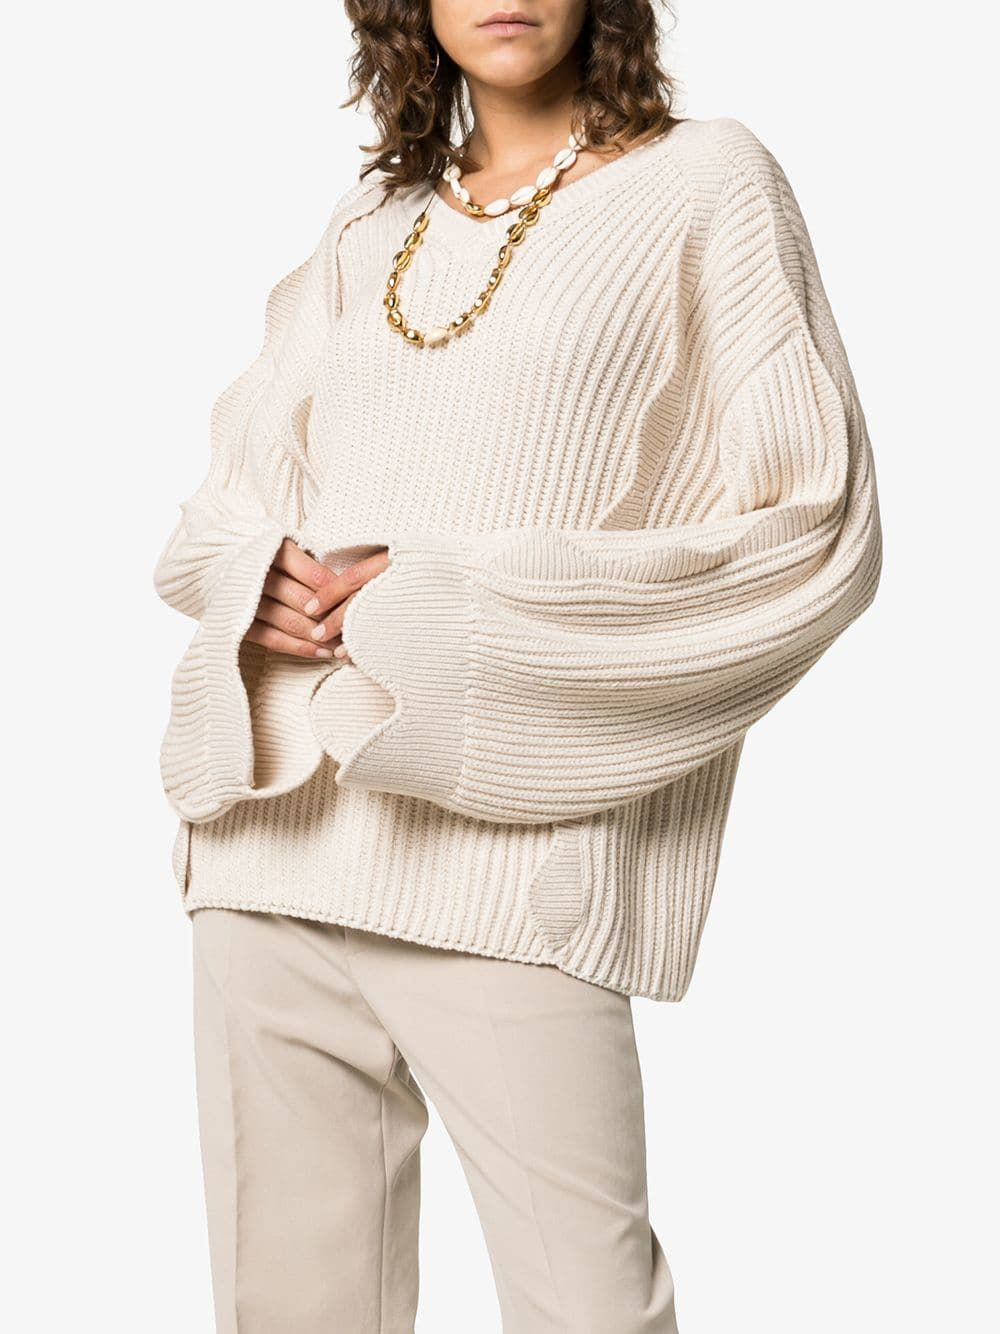 eac5bc8f7abe Stella McCartney Scallop Sleeved Oversized Knitted Jumper in 2019 ...